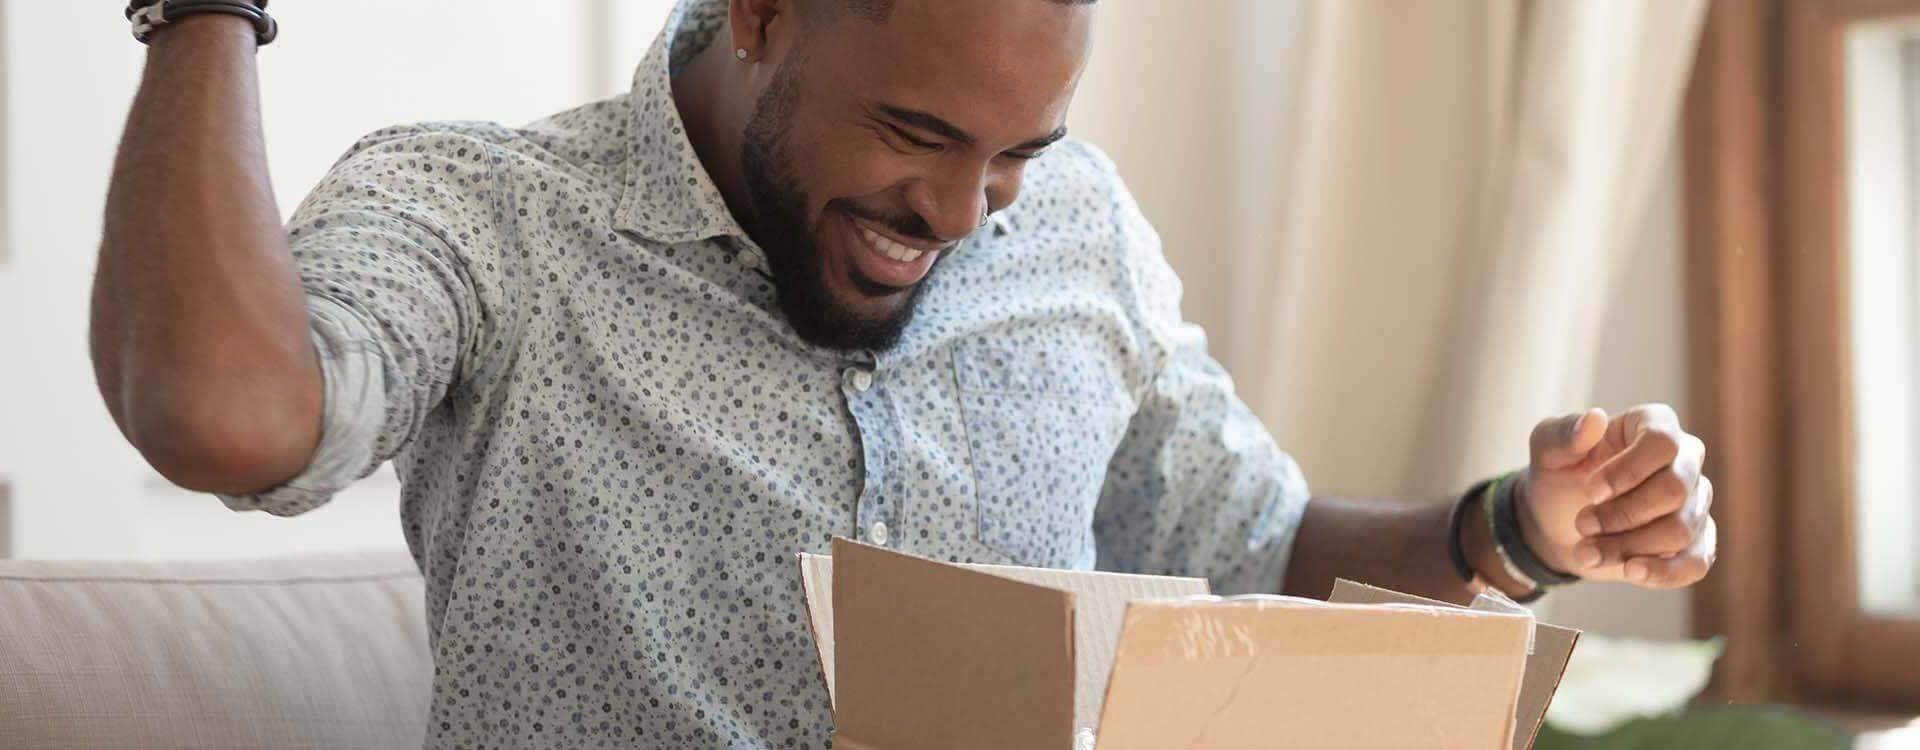 Smiling man receiving and opening parcel